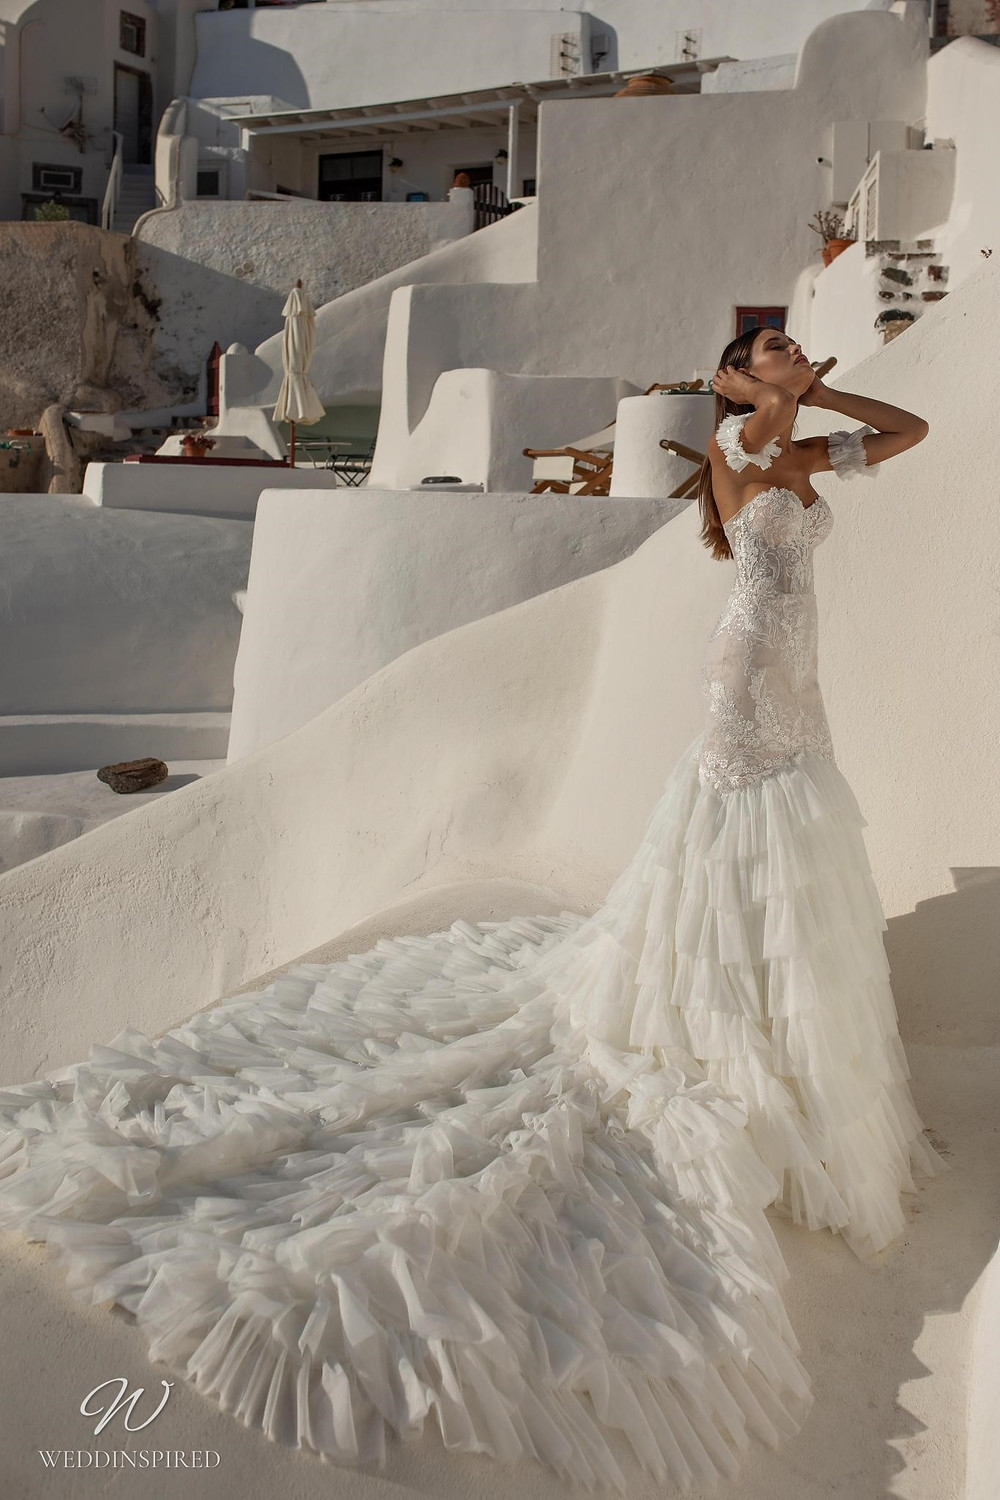 A Ricca Sposa lace mermaid wedding dress with a tulle ruffle skirt and a train